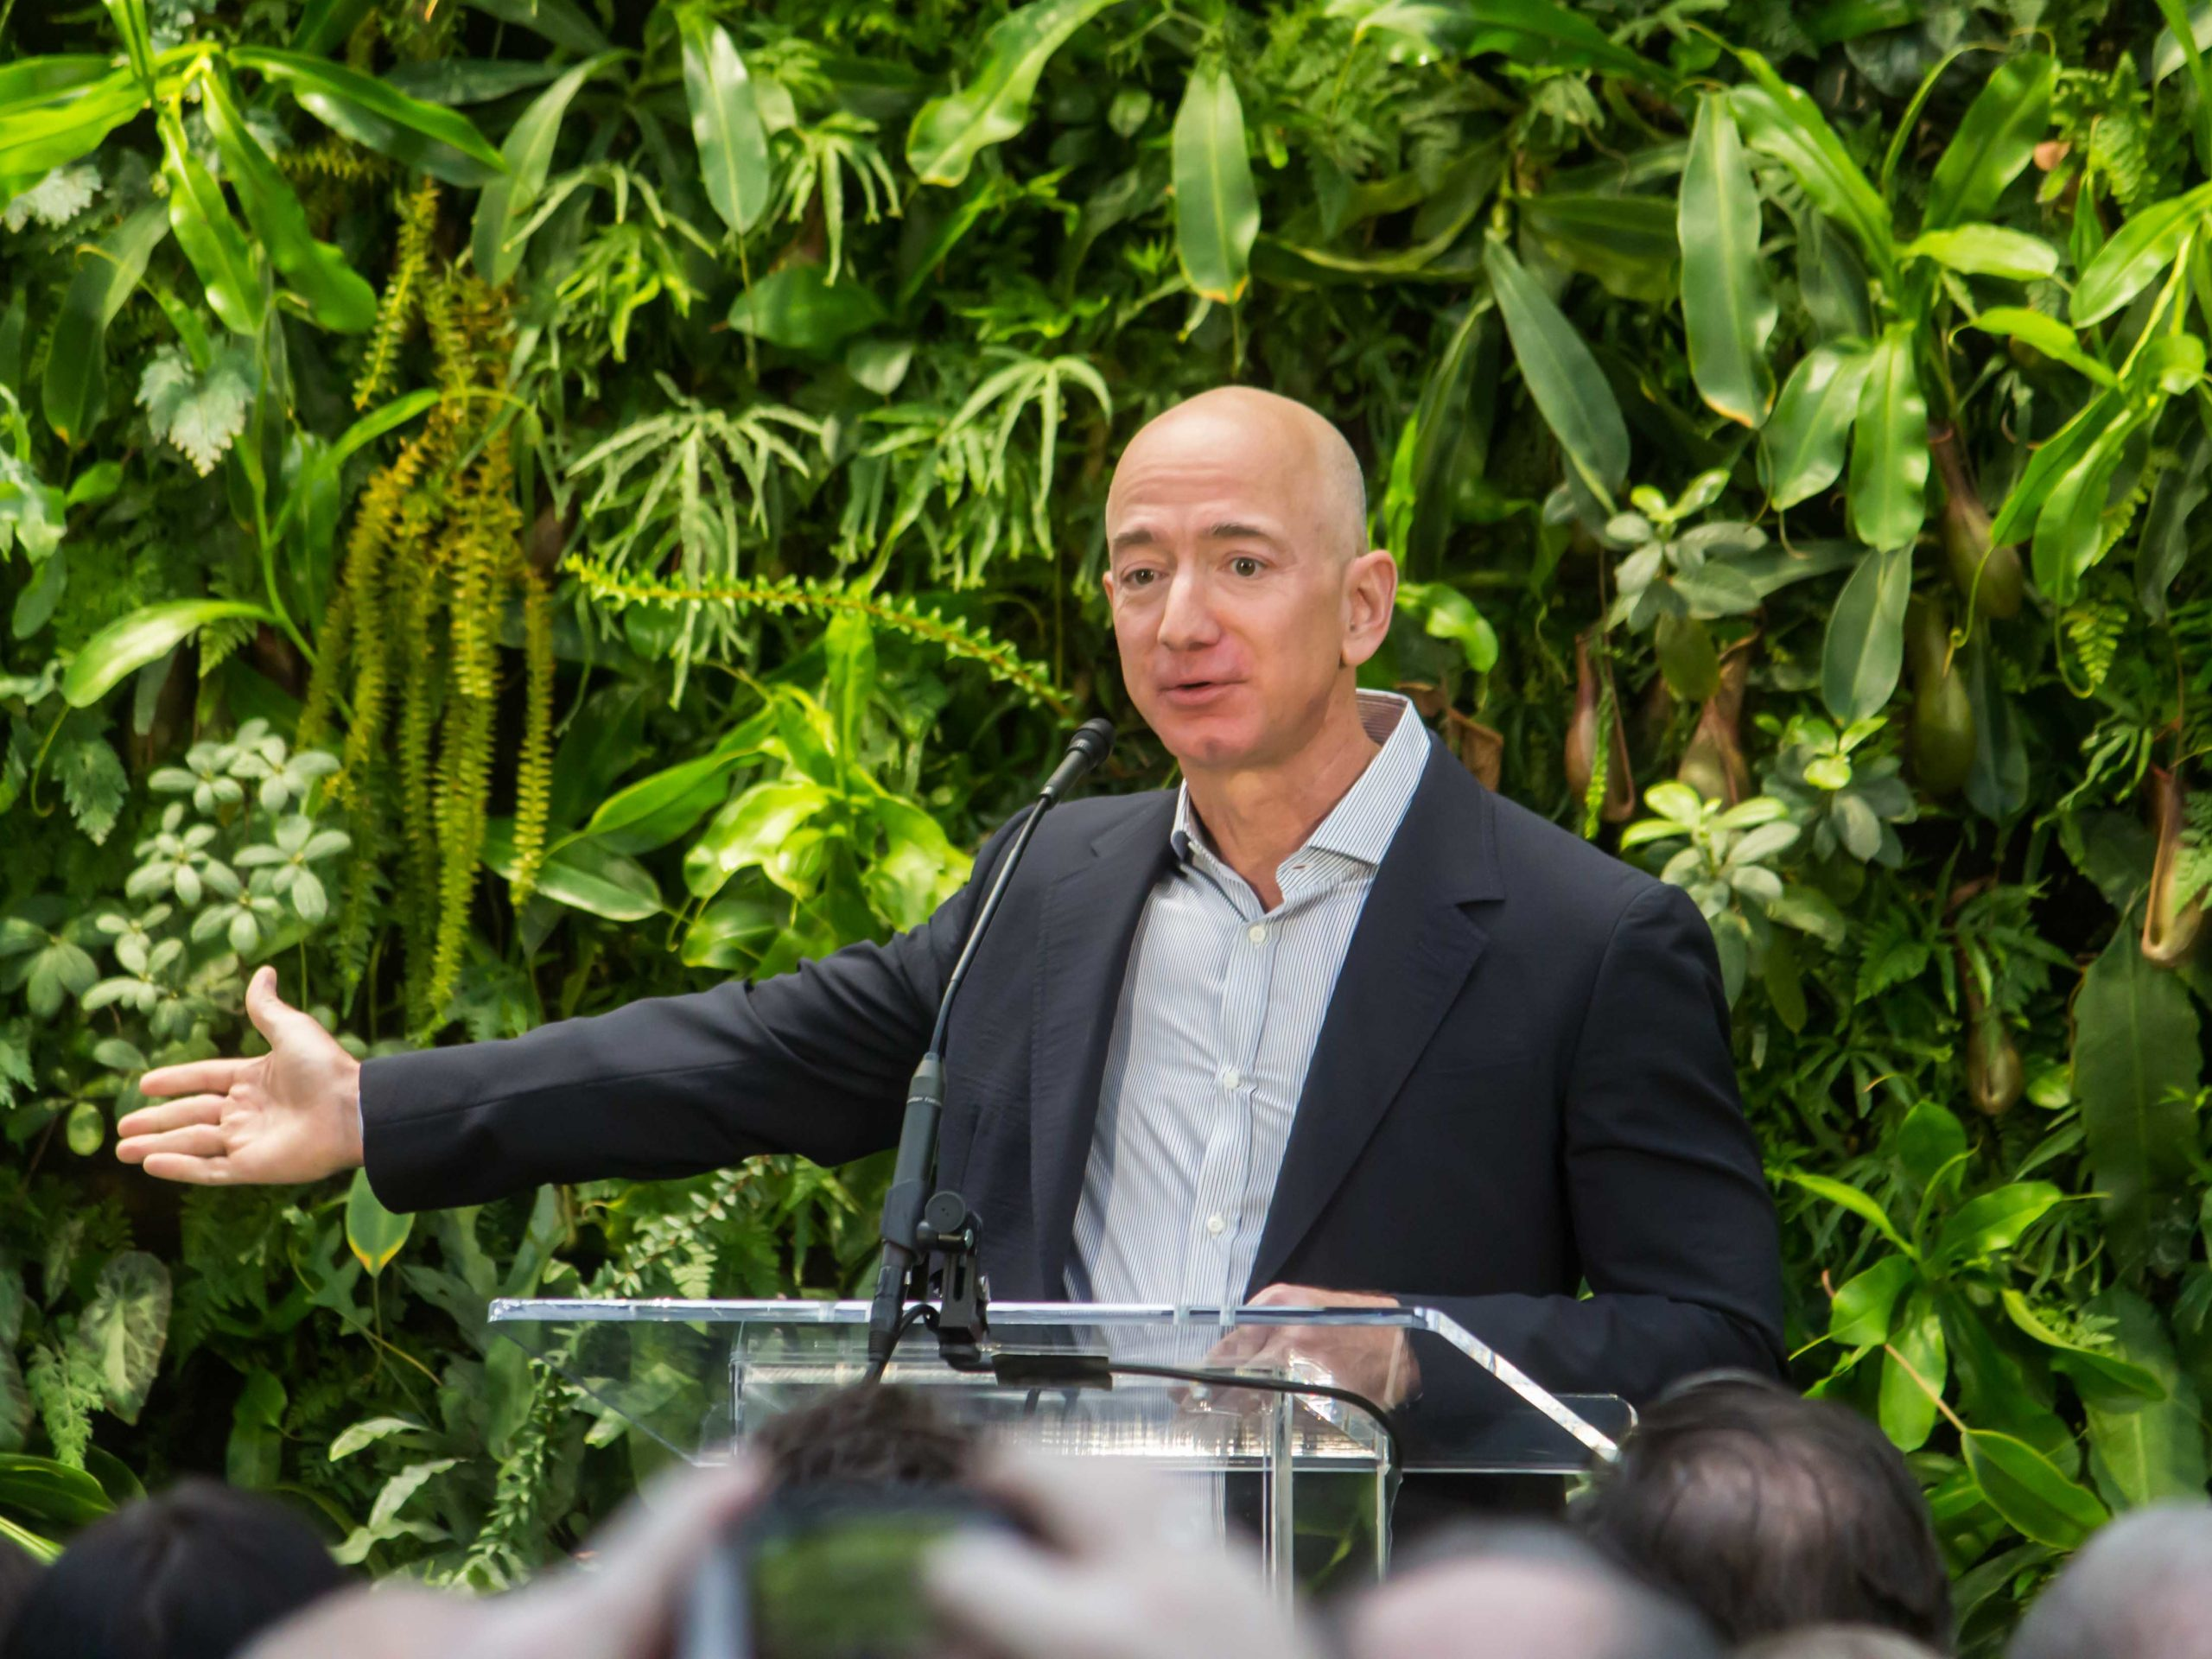 Jeff Bezos at Amazon Spheres Grand Opening in Seattle   2018 39074799225 cropped2 scaled 1